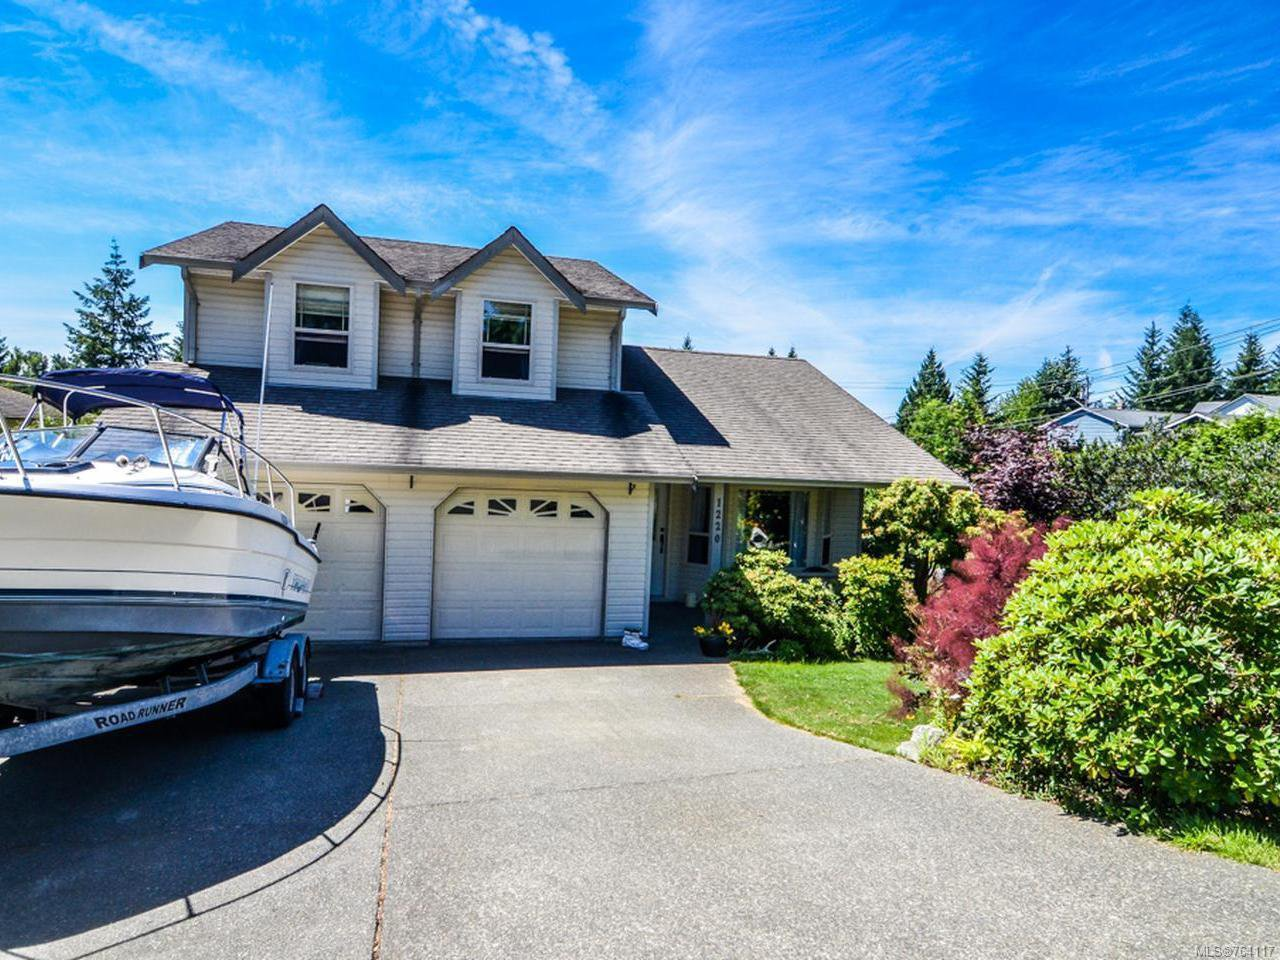 Main Photo: 1220 MOUNTAIN VIEW PLACE in CAMPBELL RIVER: CR Campbell River Central House for sale (Campbell River)  : MLS®# 764117